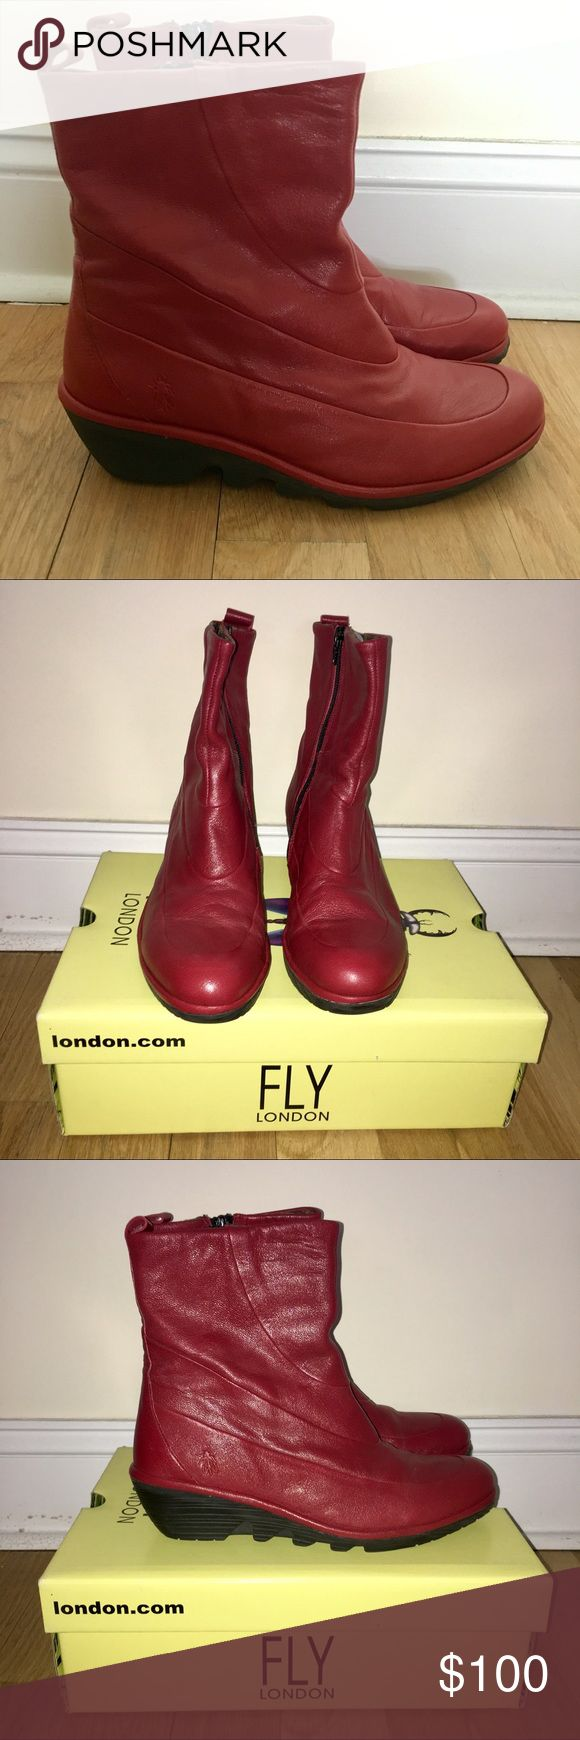 """Fly London Boots Fly London """"Pilz"""" boots. Mid-calf height. Round toe. Slim wedge heel. Full grain genuine leather upper. Lined with soft canvas. Man-made sole with textures thread. Excellent condition. Fly London Shoes"""